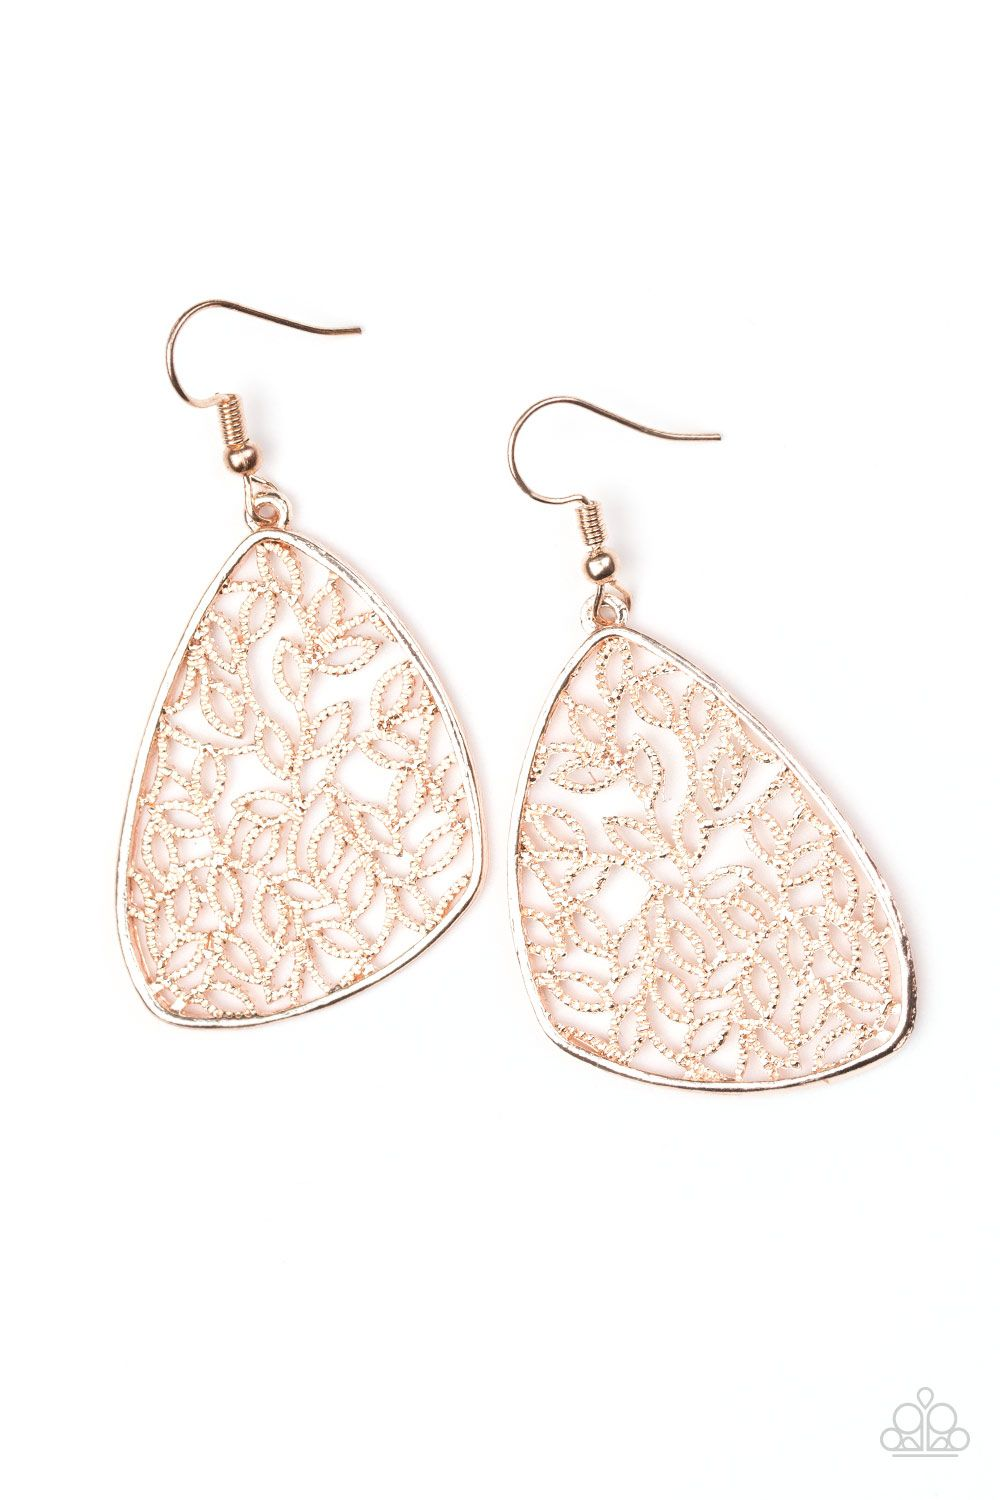 a369cfea7 Time To LEAF - Rose Gold Paparazzi Jewelry, Paparazzi Accessories, Rose  Gold Earrings,